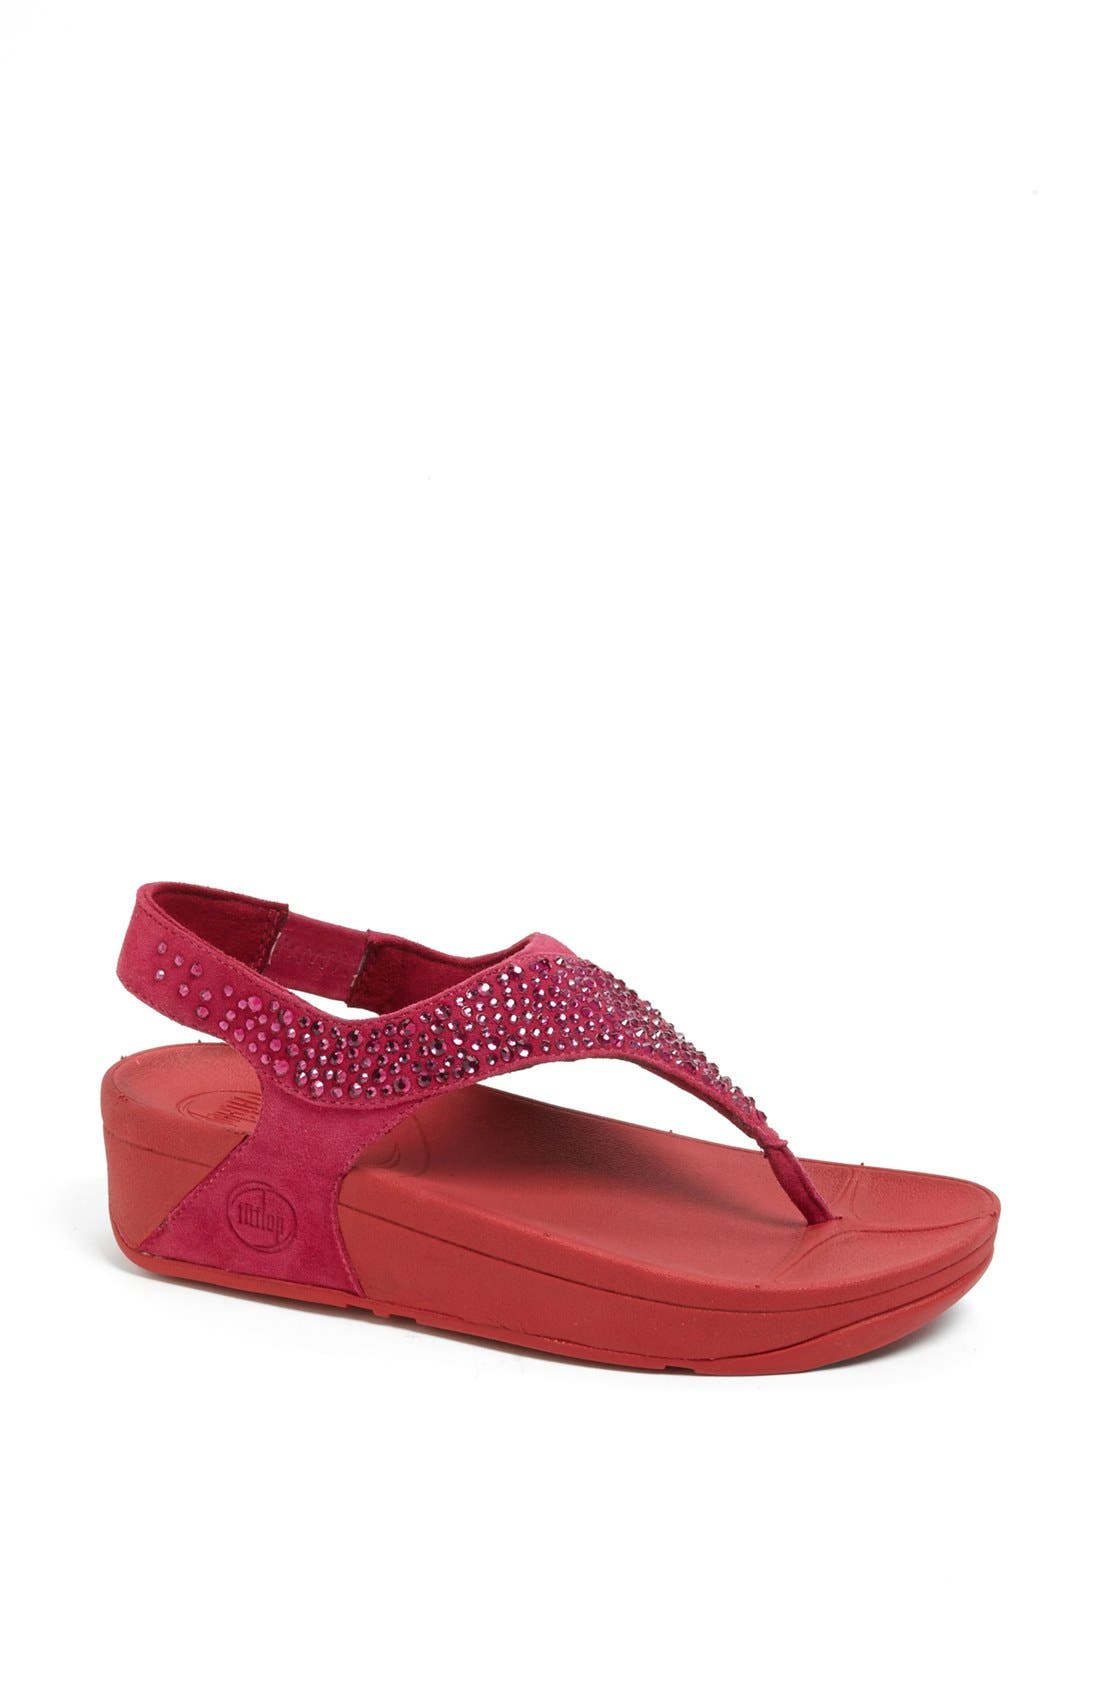 Main Image - FitFlop 'Suisei™' Sandal (Online Only)